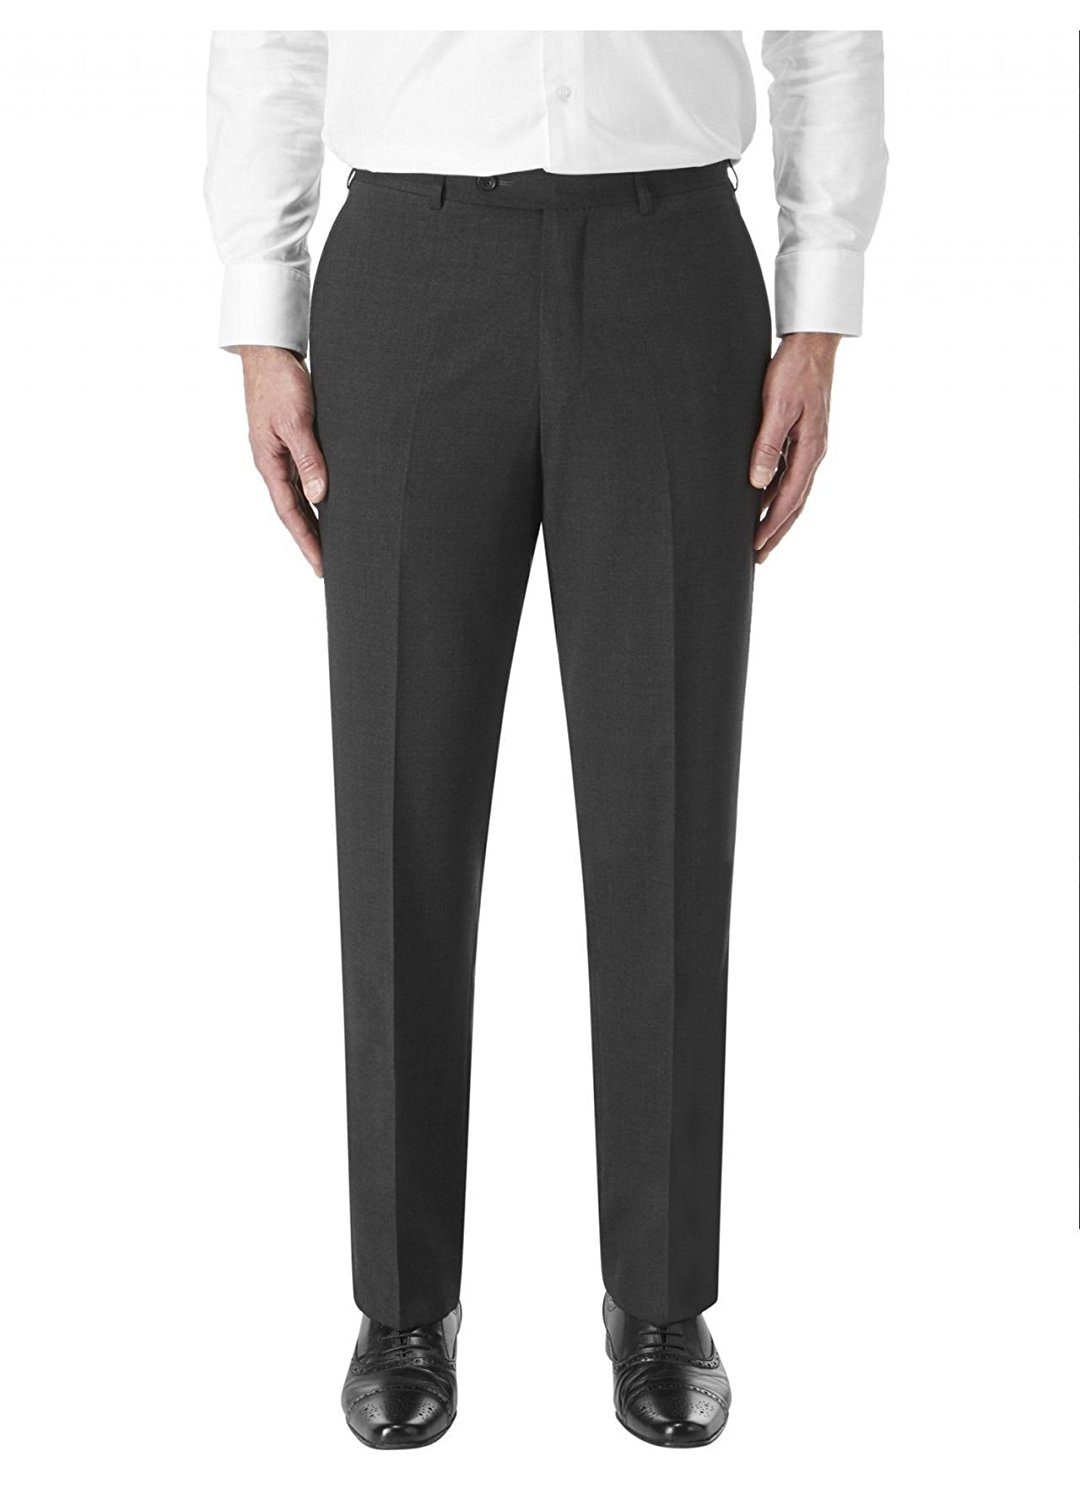 SKOPES Wool Rich Darwin Charcoal Suit Trouser in Waist 30 to 60, S/R/L